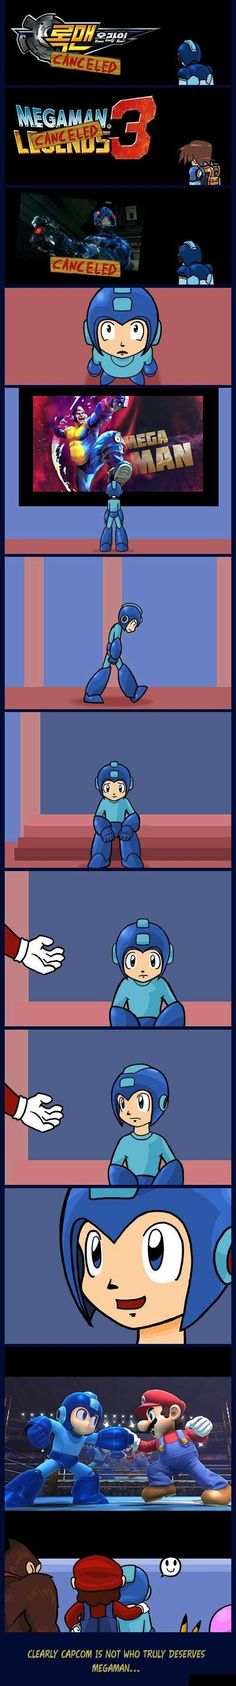 Megaman, you are not alone!